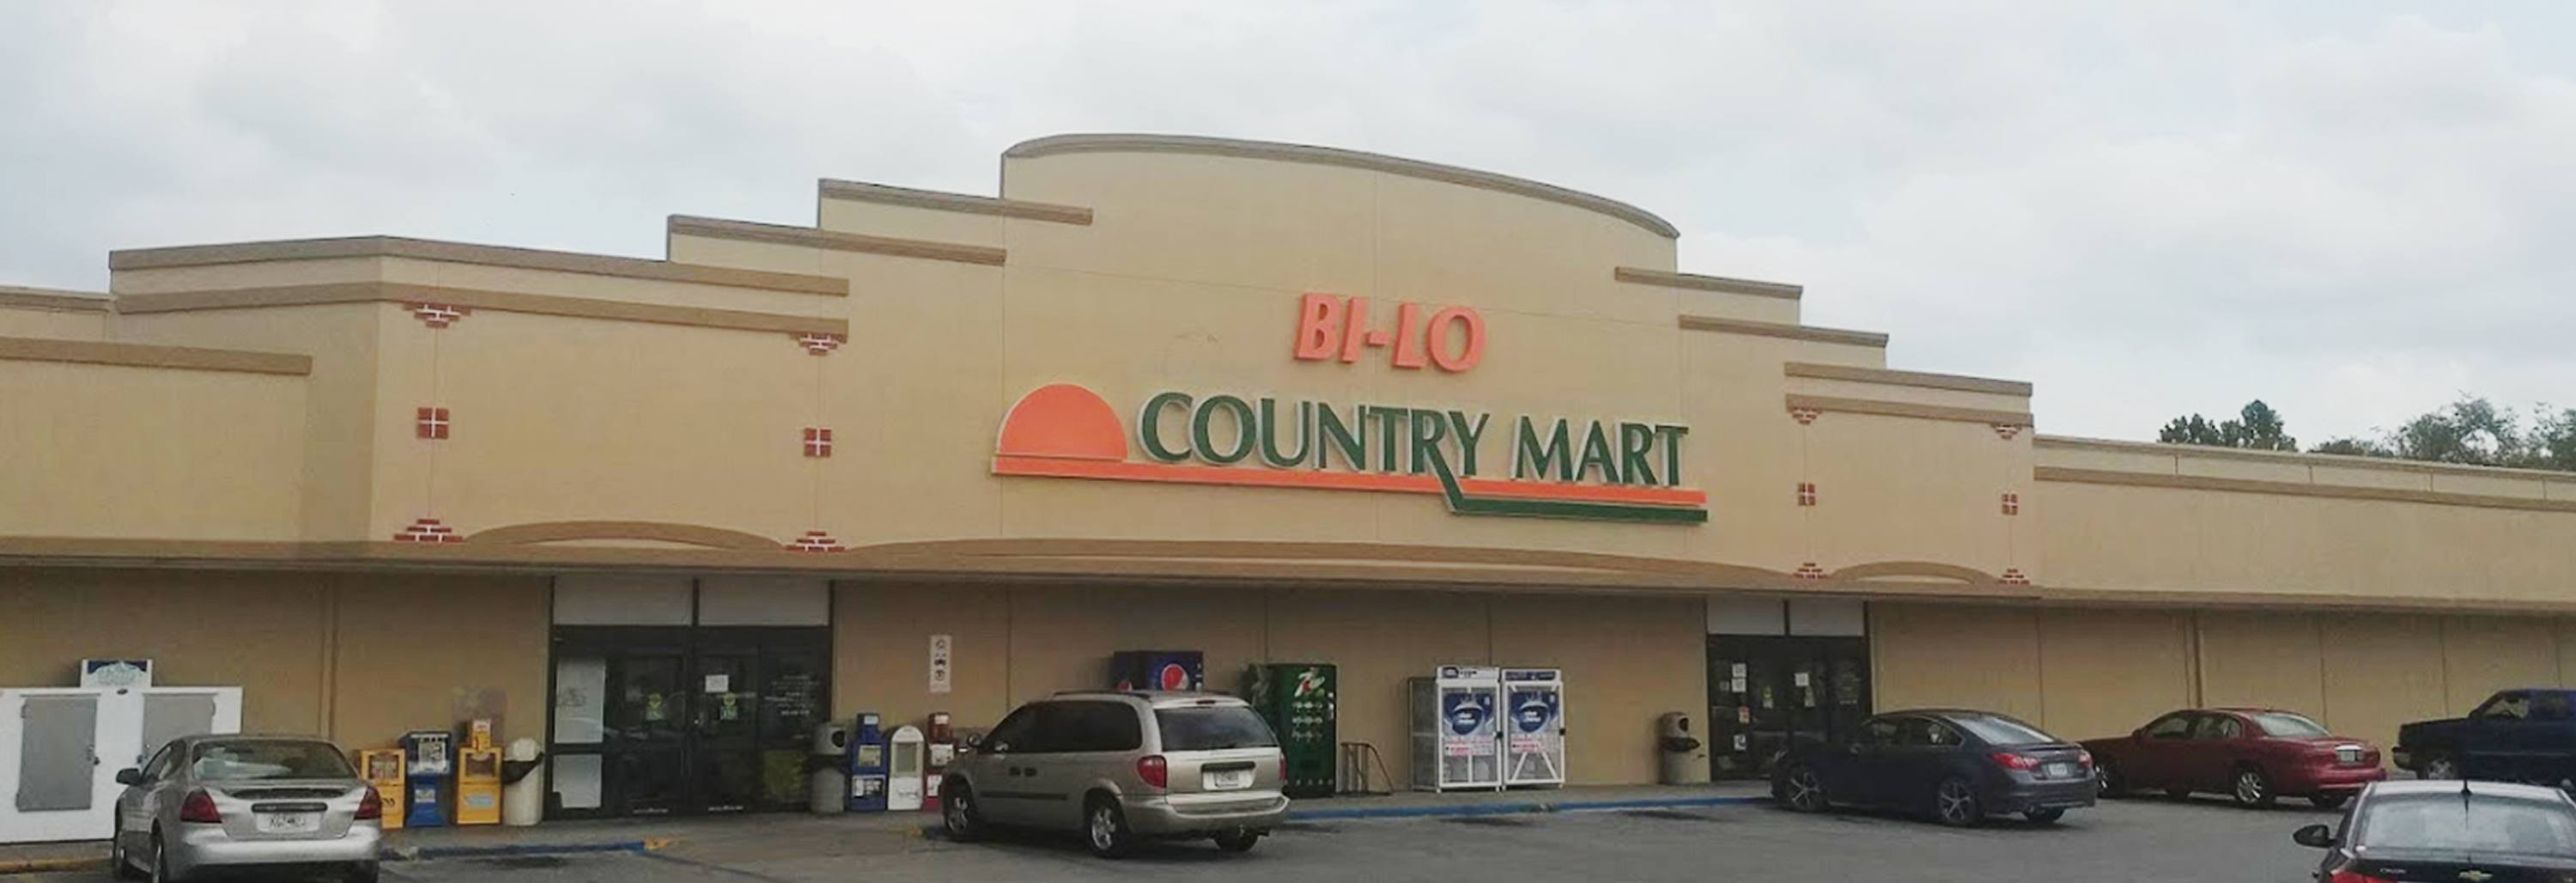 Exterior Store Front - BiLo Country Mart